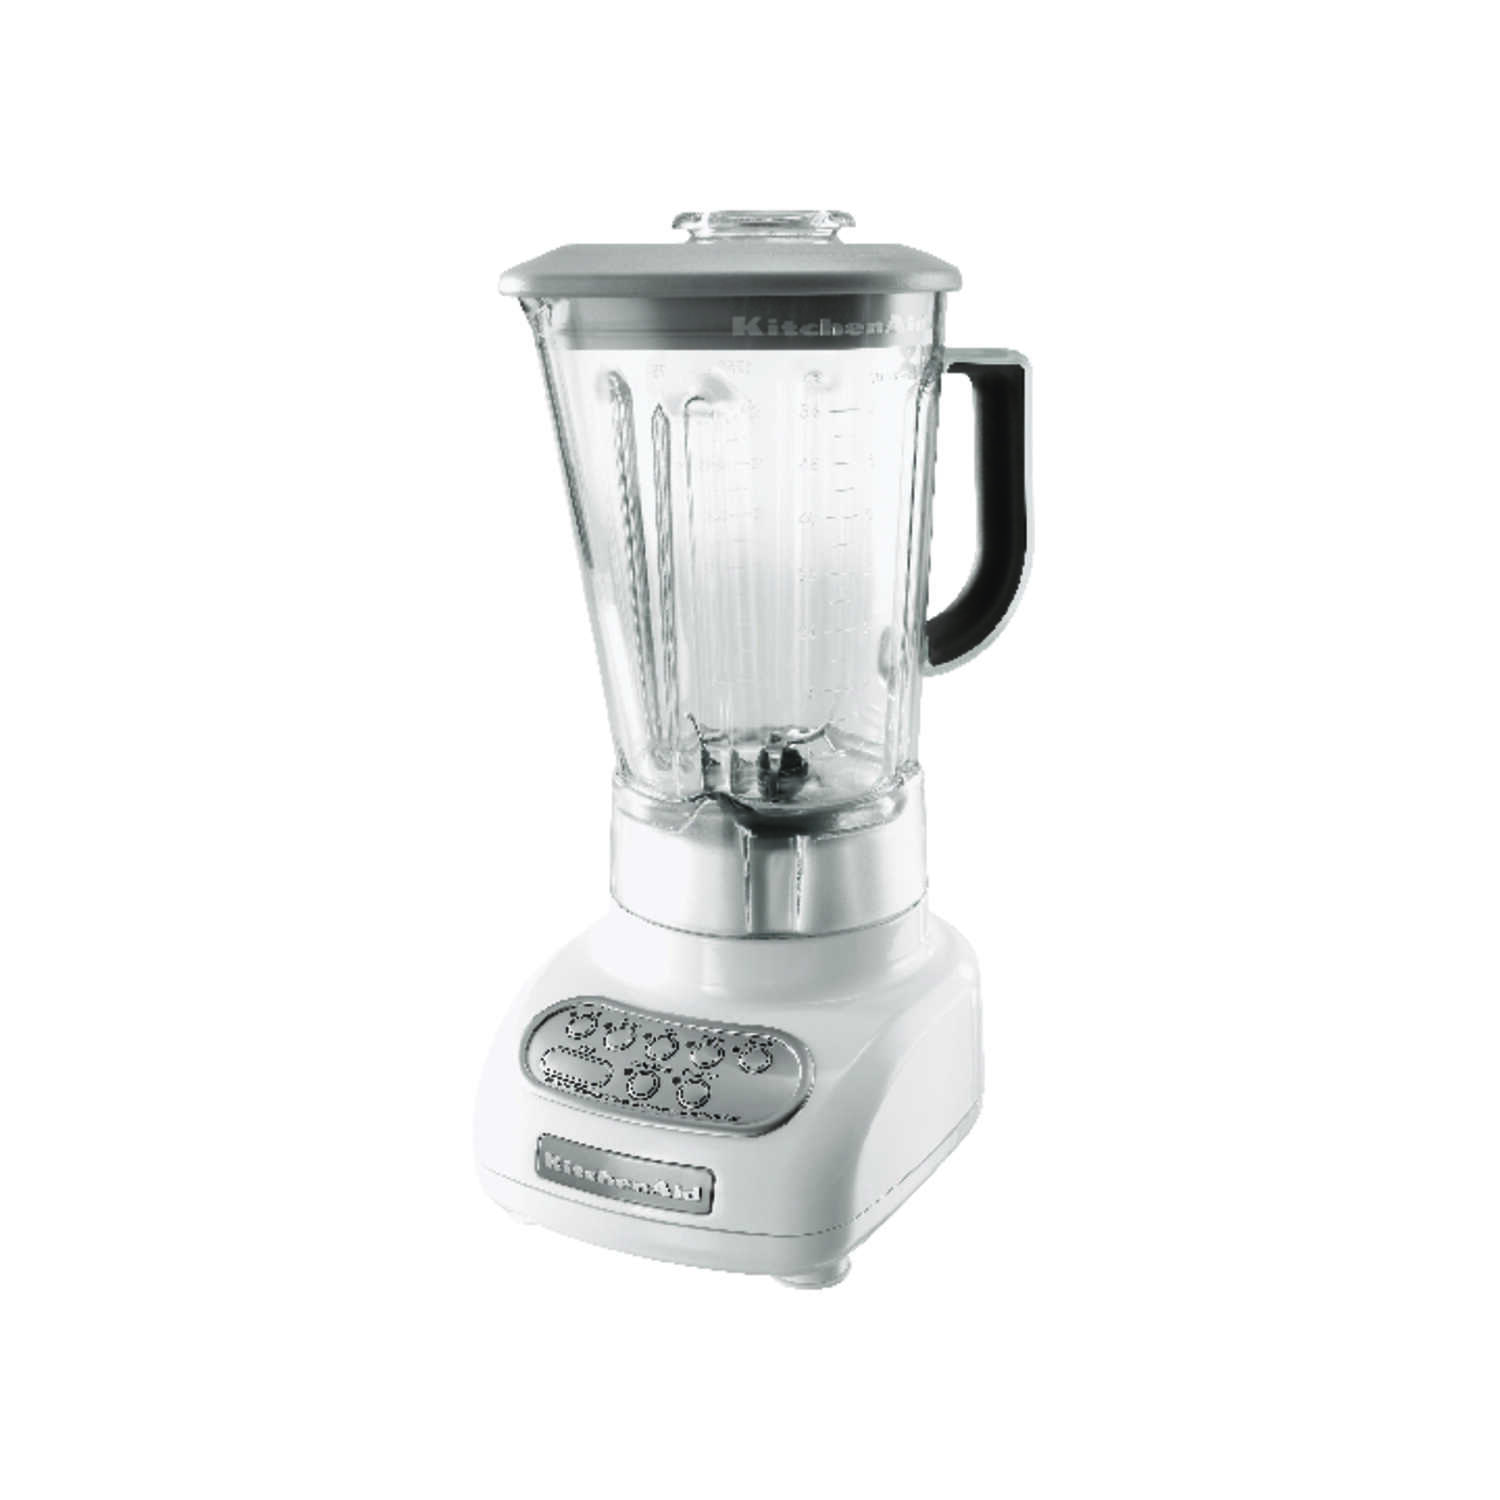 KitchenAid  Classic  White  Die Cast Metal  Blender  56 oz. 5 speed